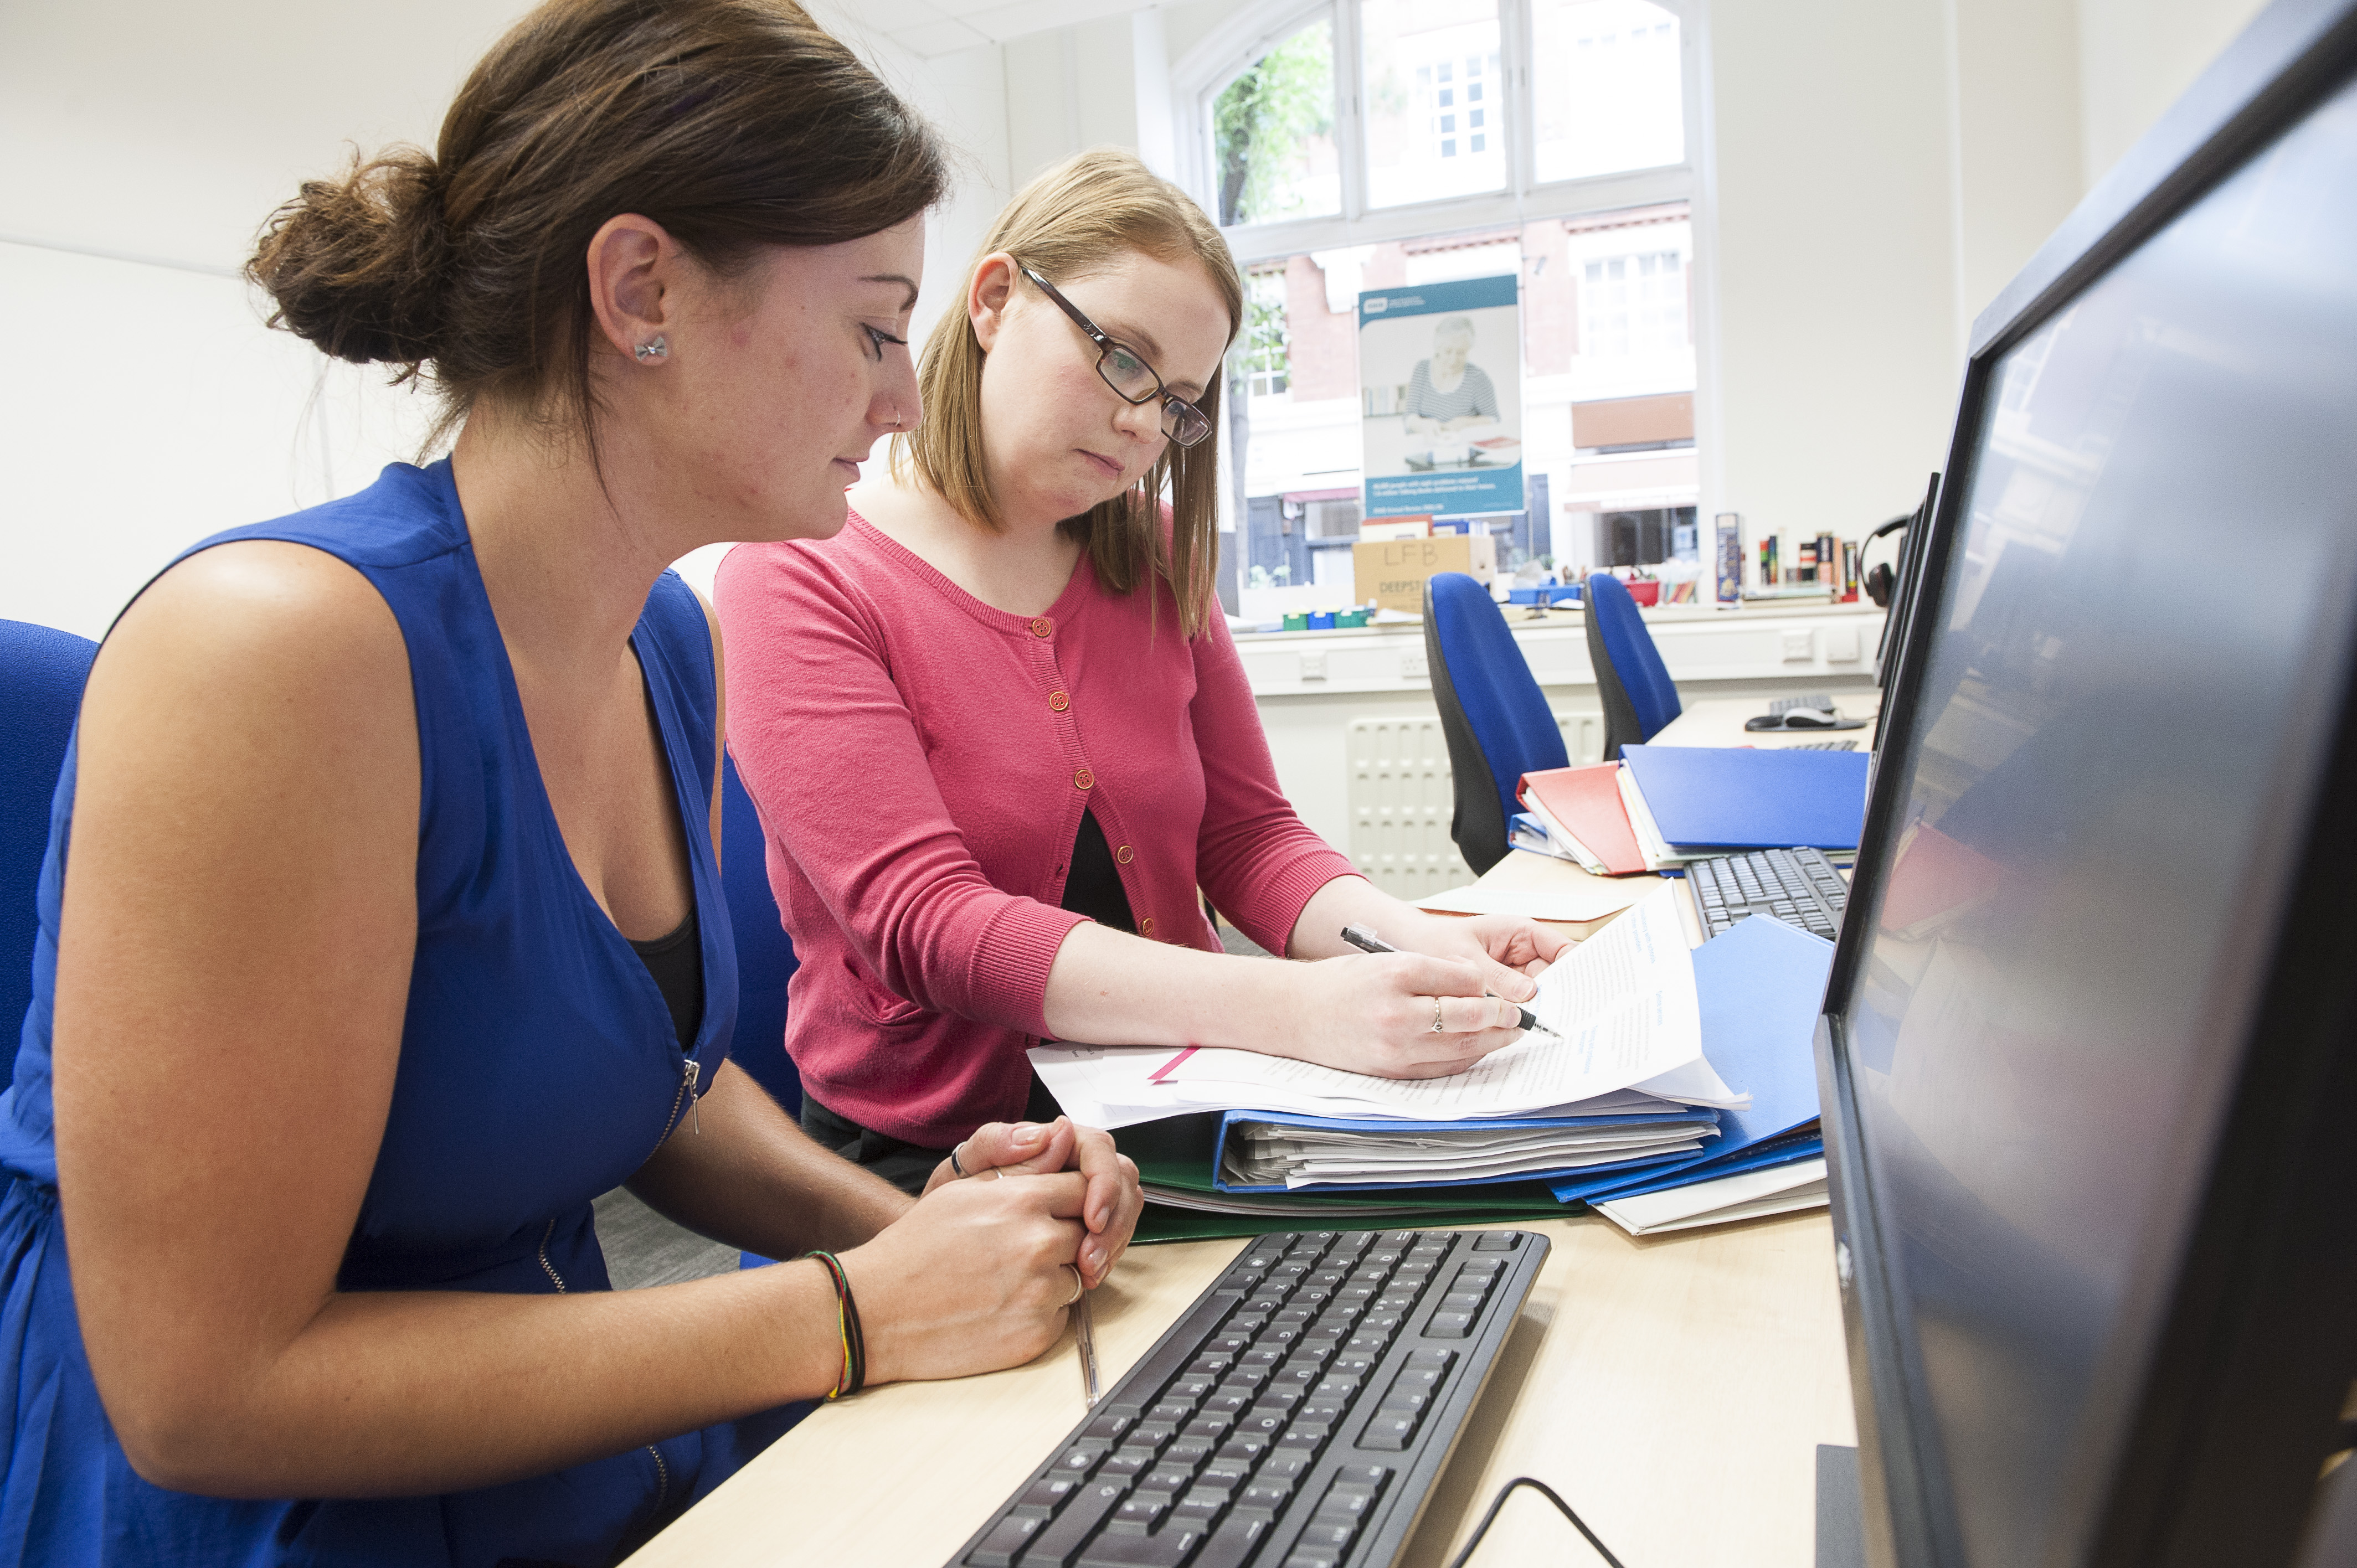 Course Image DACPD93-0120 - Developing Writing Skills in Adults with Dyslexia